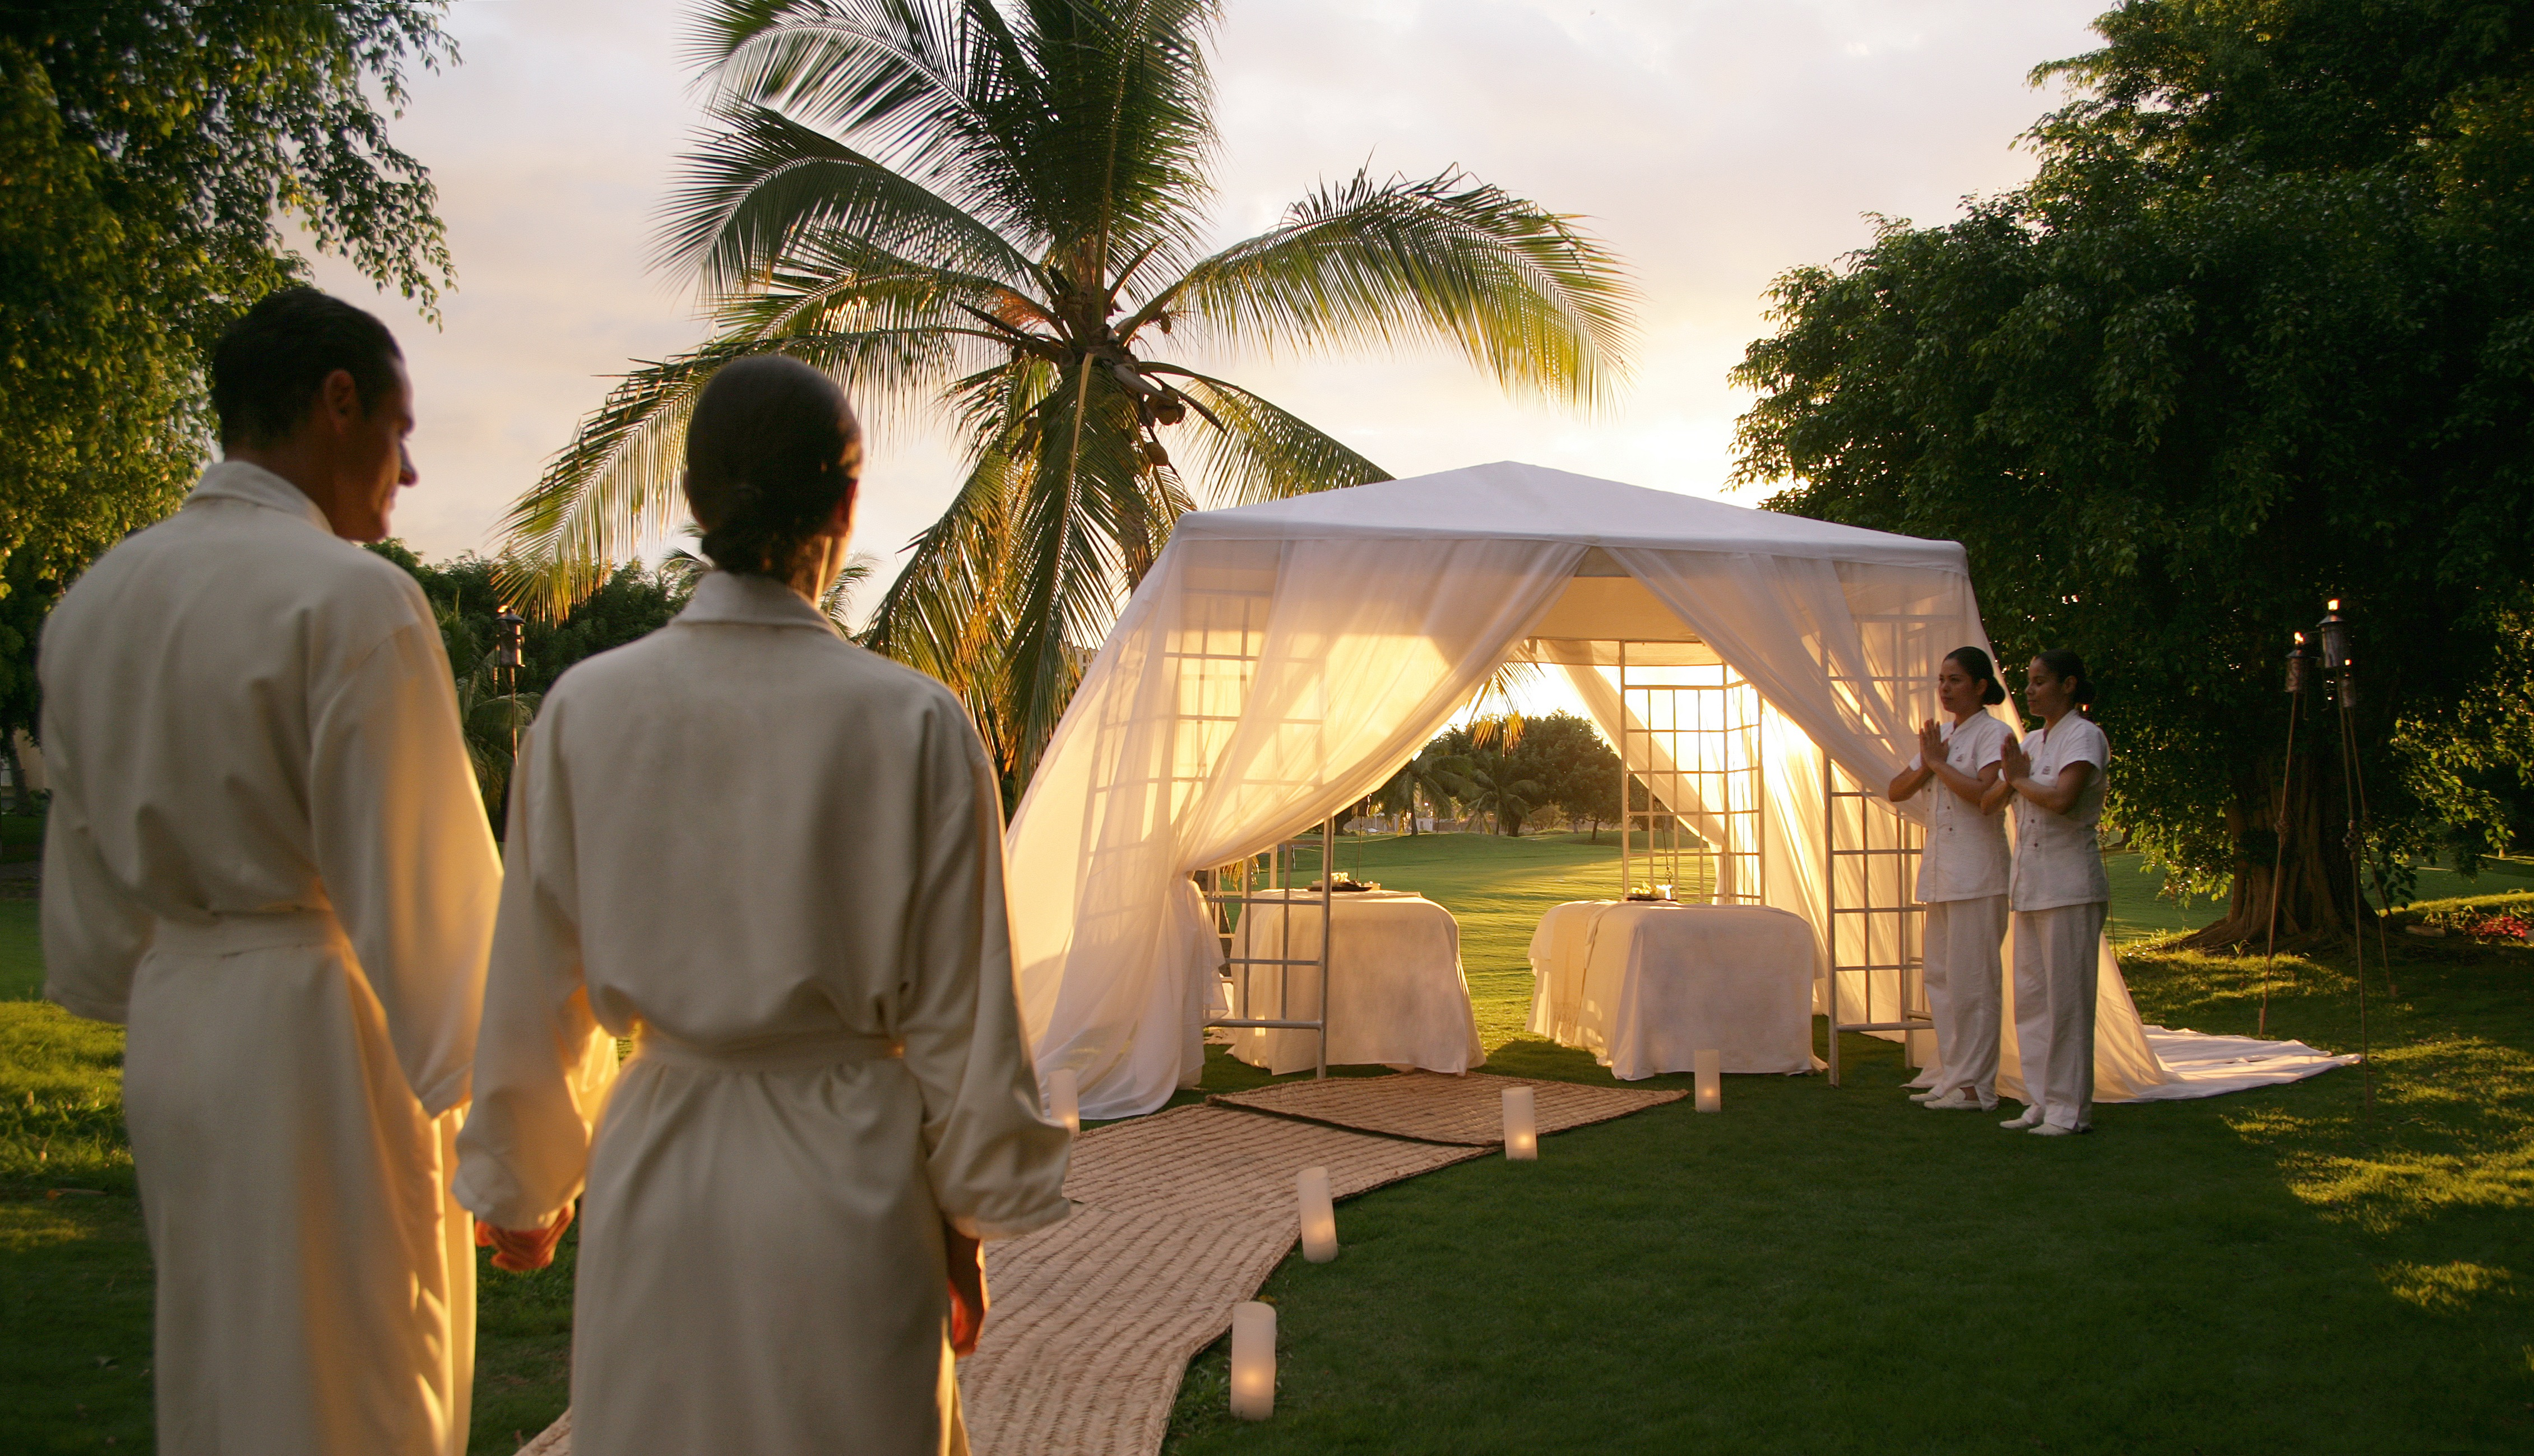 Summer spa package offered at casa velas boutique hotel in for Spa weekend getaways for couples